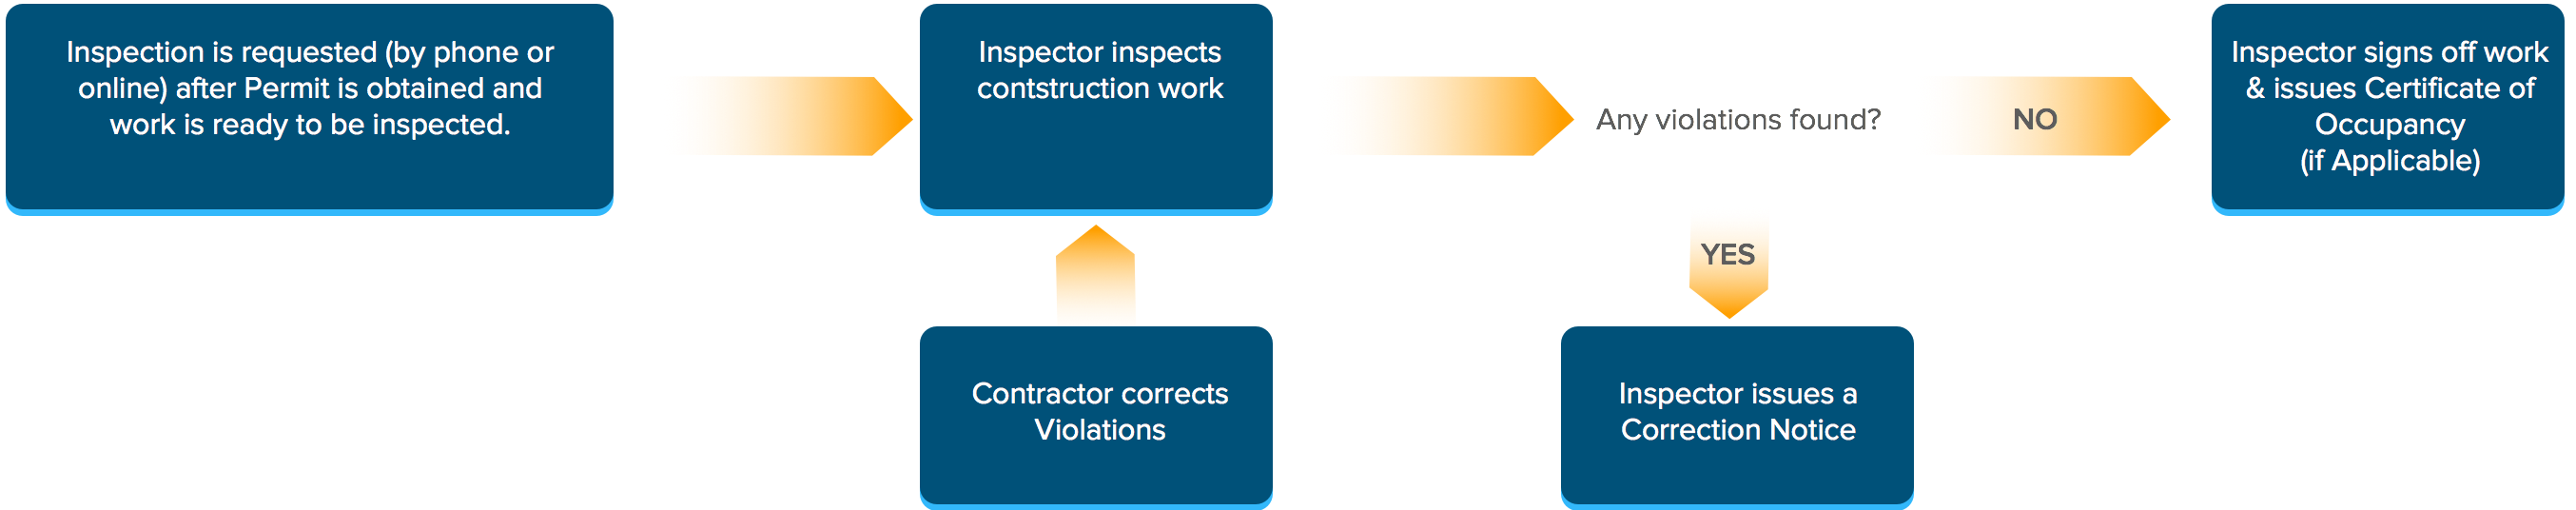 Inspection Ladbs Types Of Electrical Plans Inspections